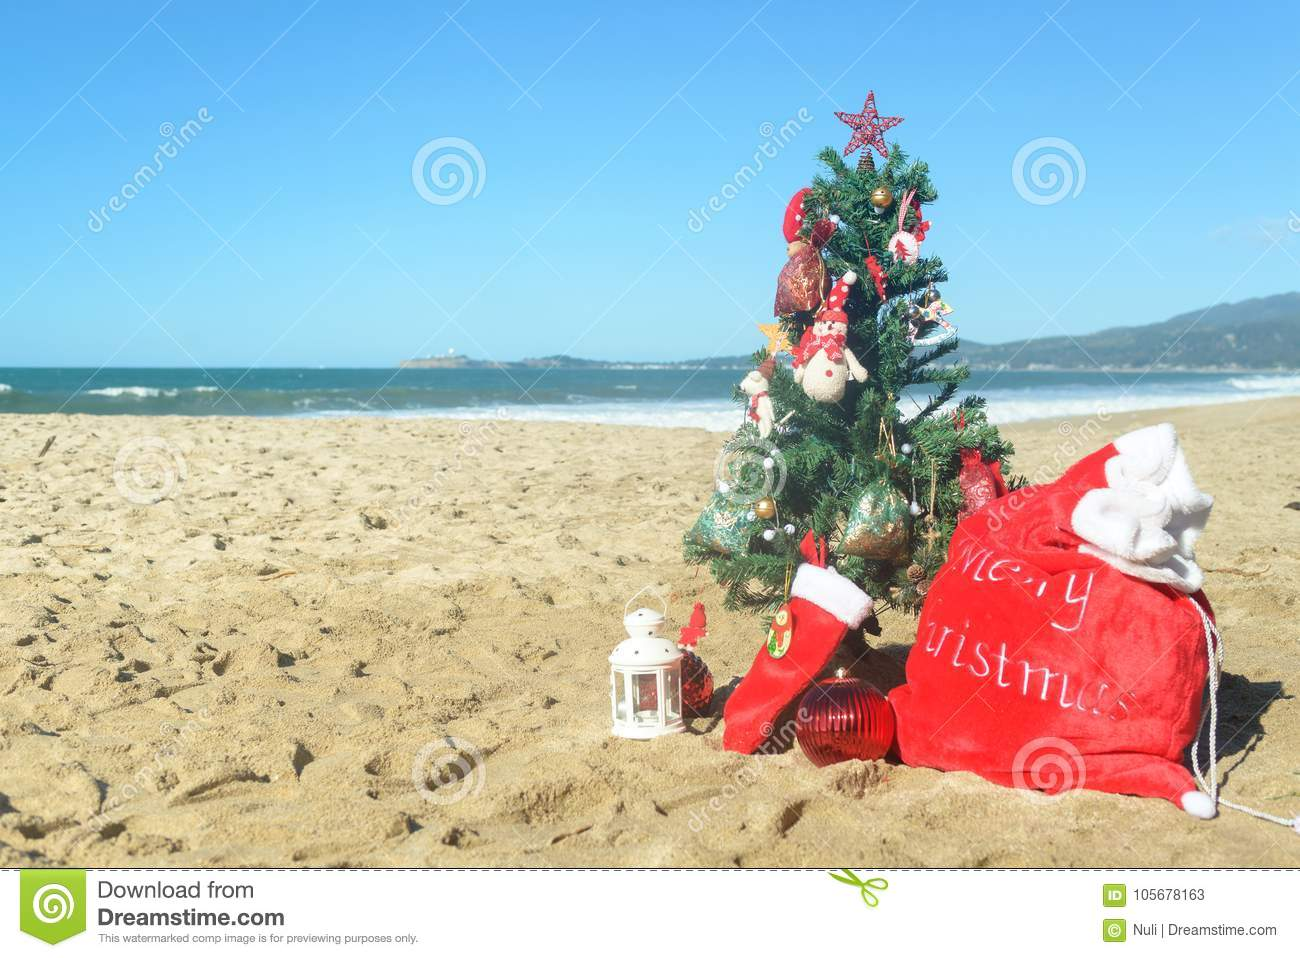 christmas at the beach red santa bag of presents stockings and decorated tree in the sand on sunny day - Christmas At The Beach